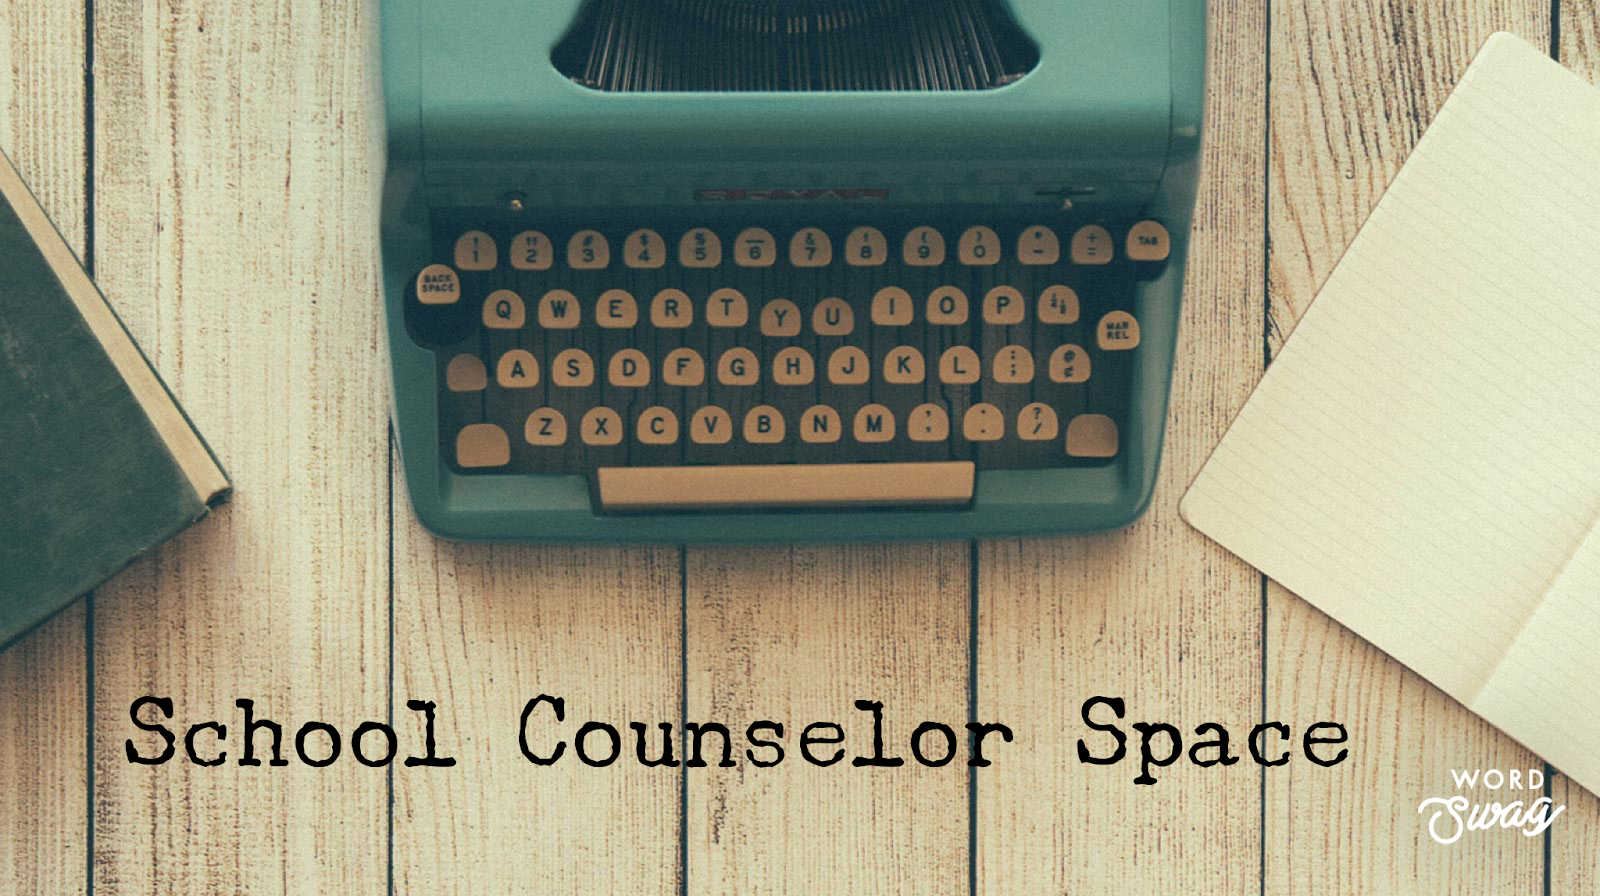 School Counselor Space